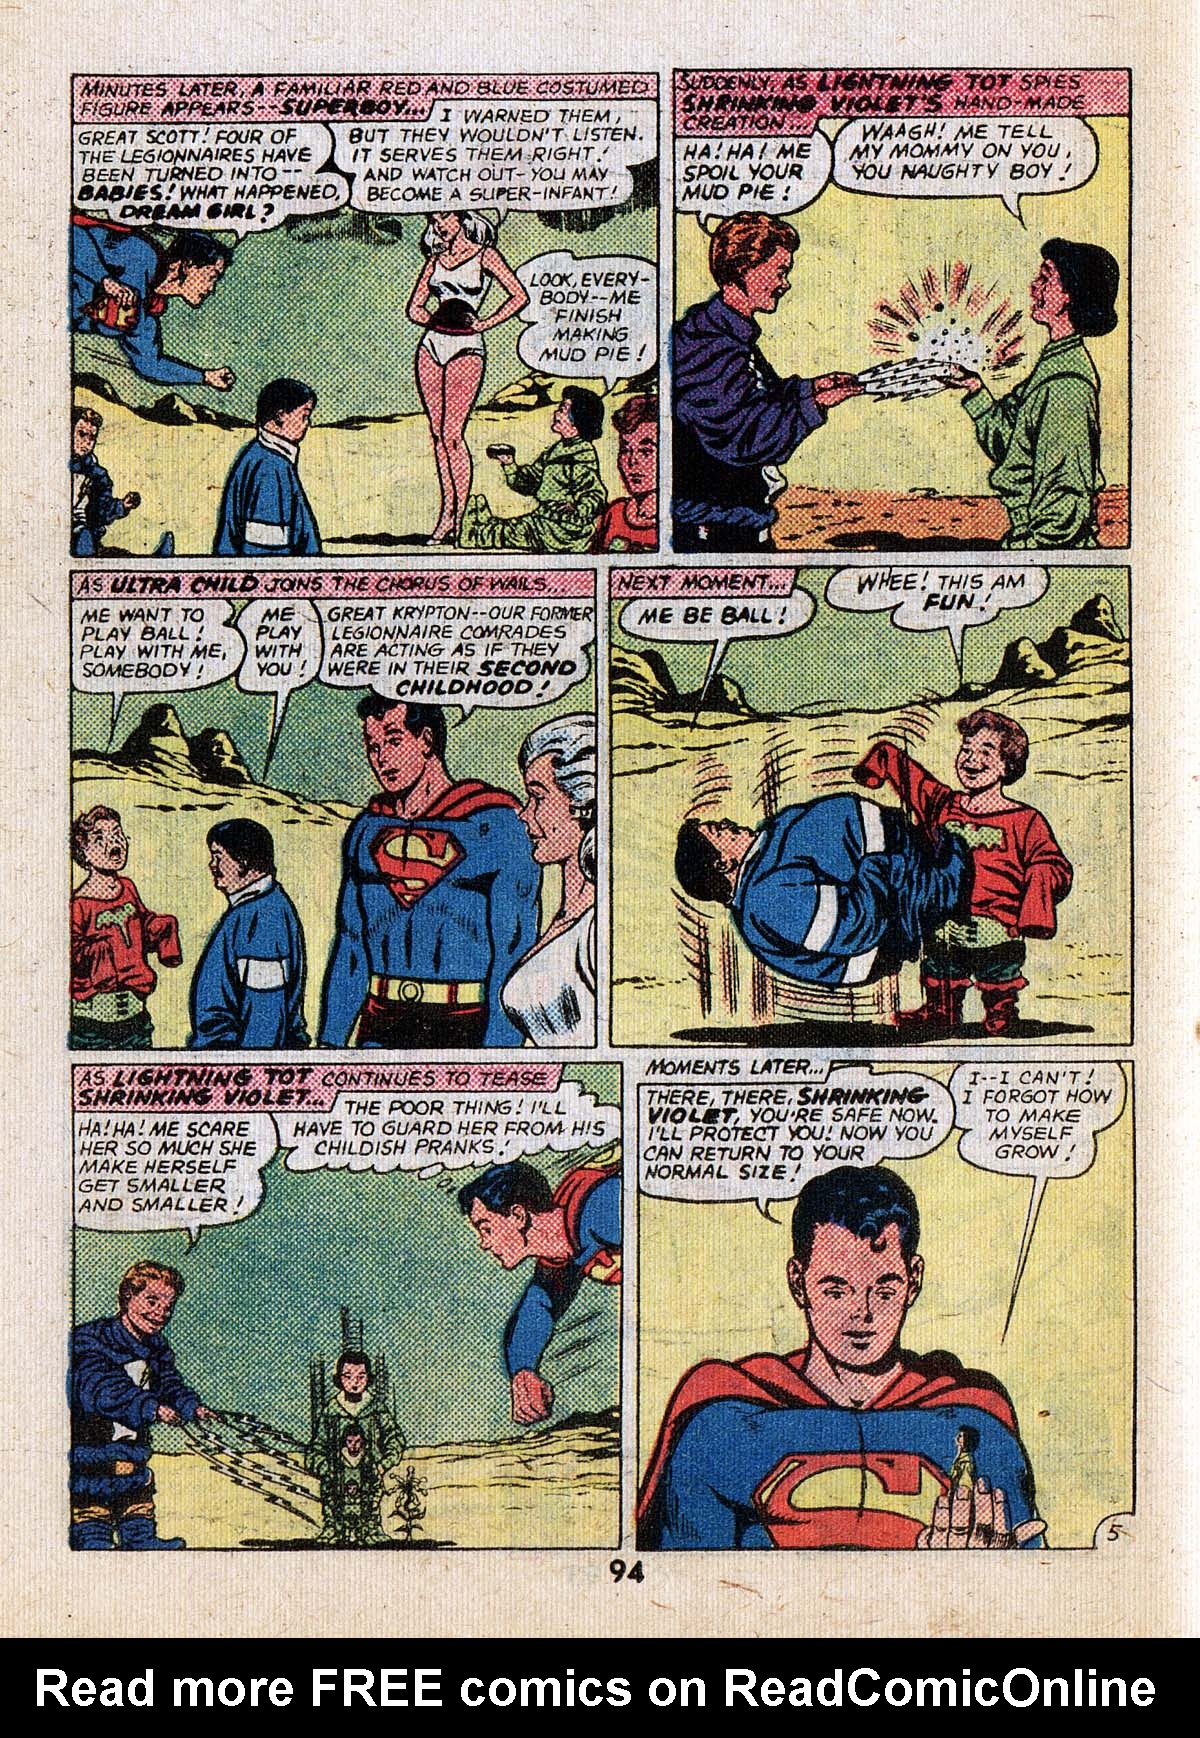 Read online Adventure Comics (1938) comic -  Issue #502 - 94